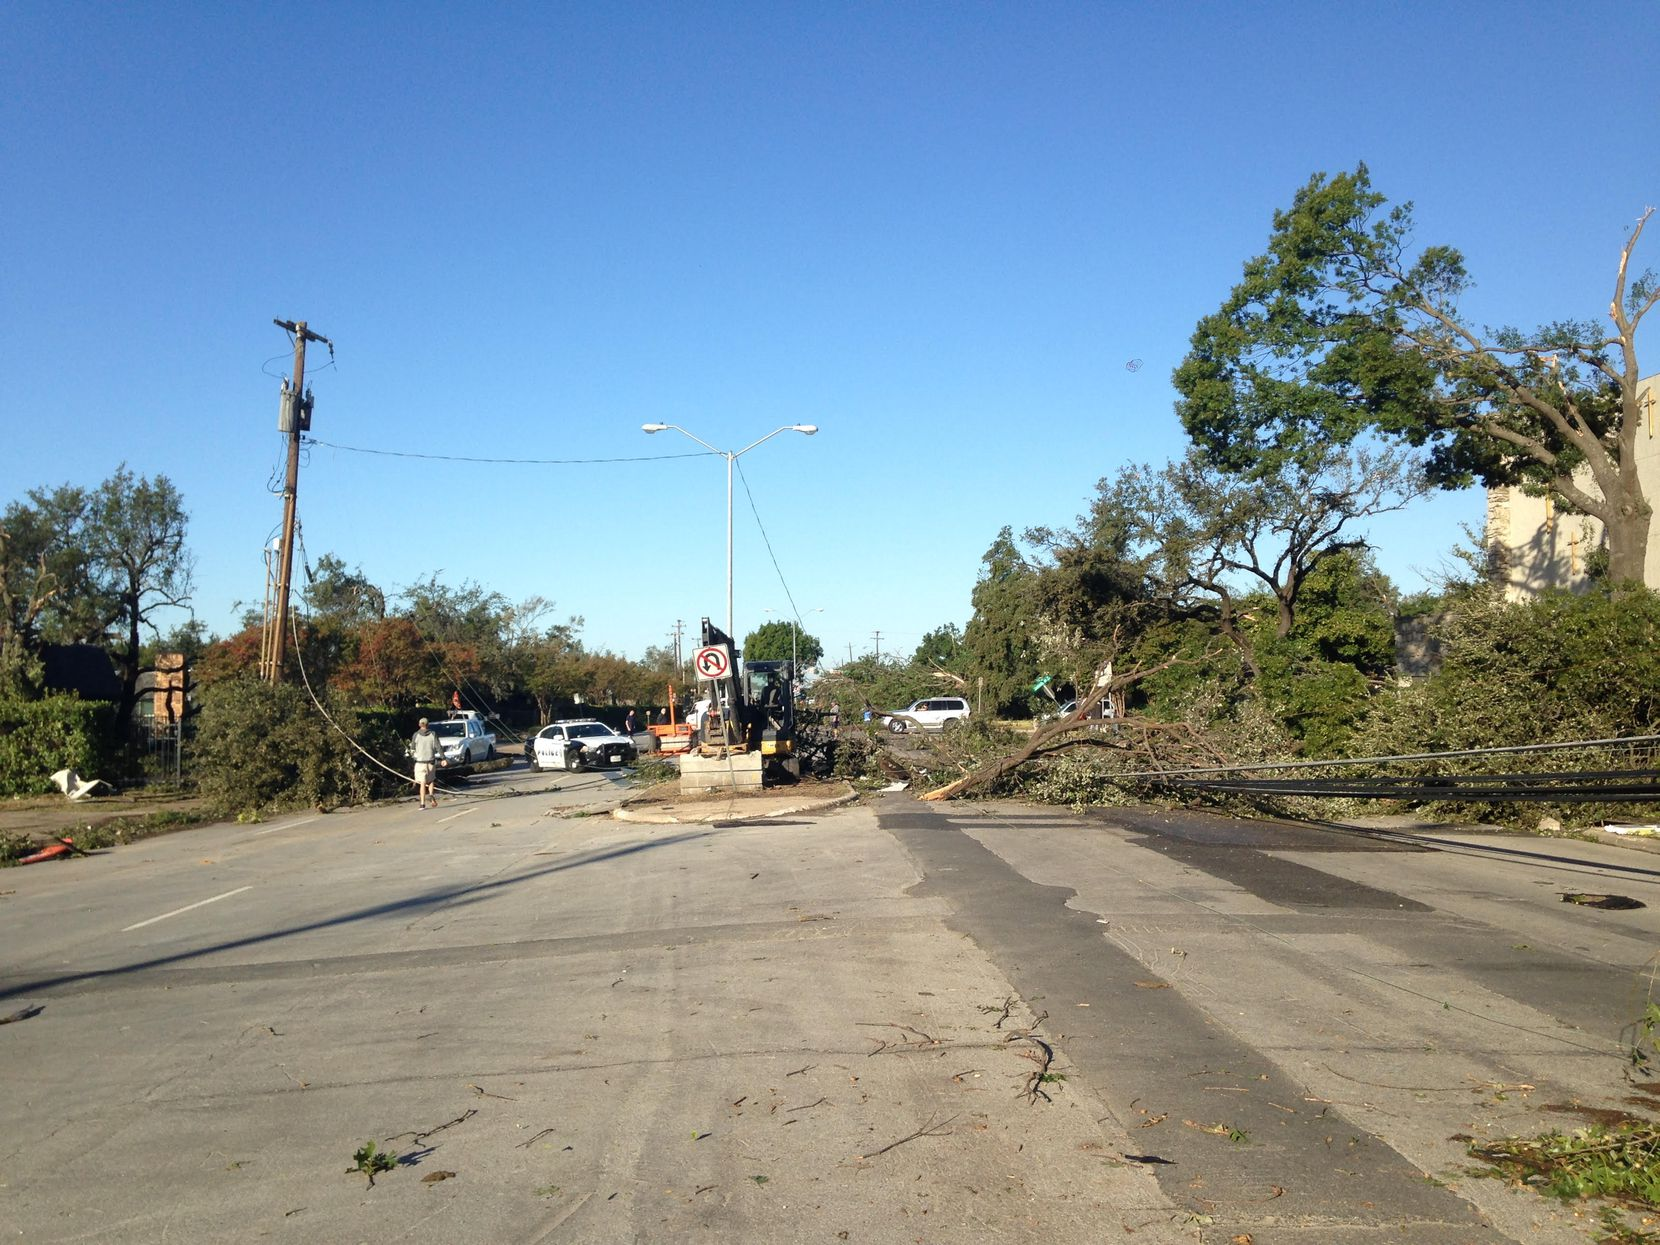 Looking west down Royal Lane near Preston Road, where power lines were downed by Sunday's tornado.